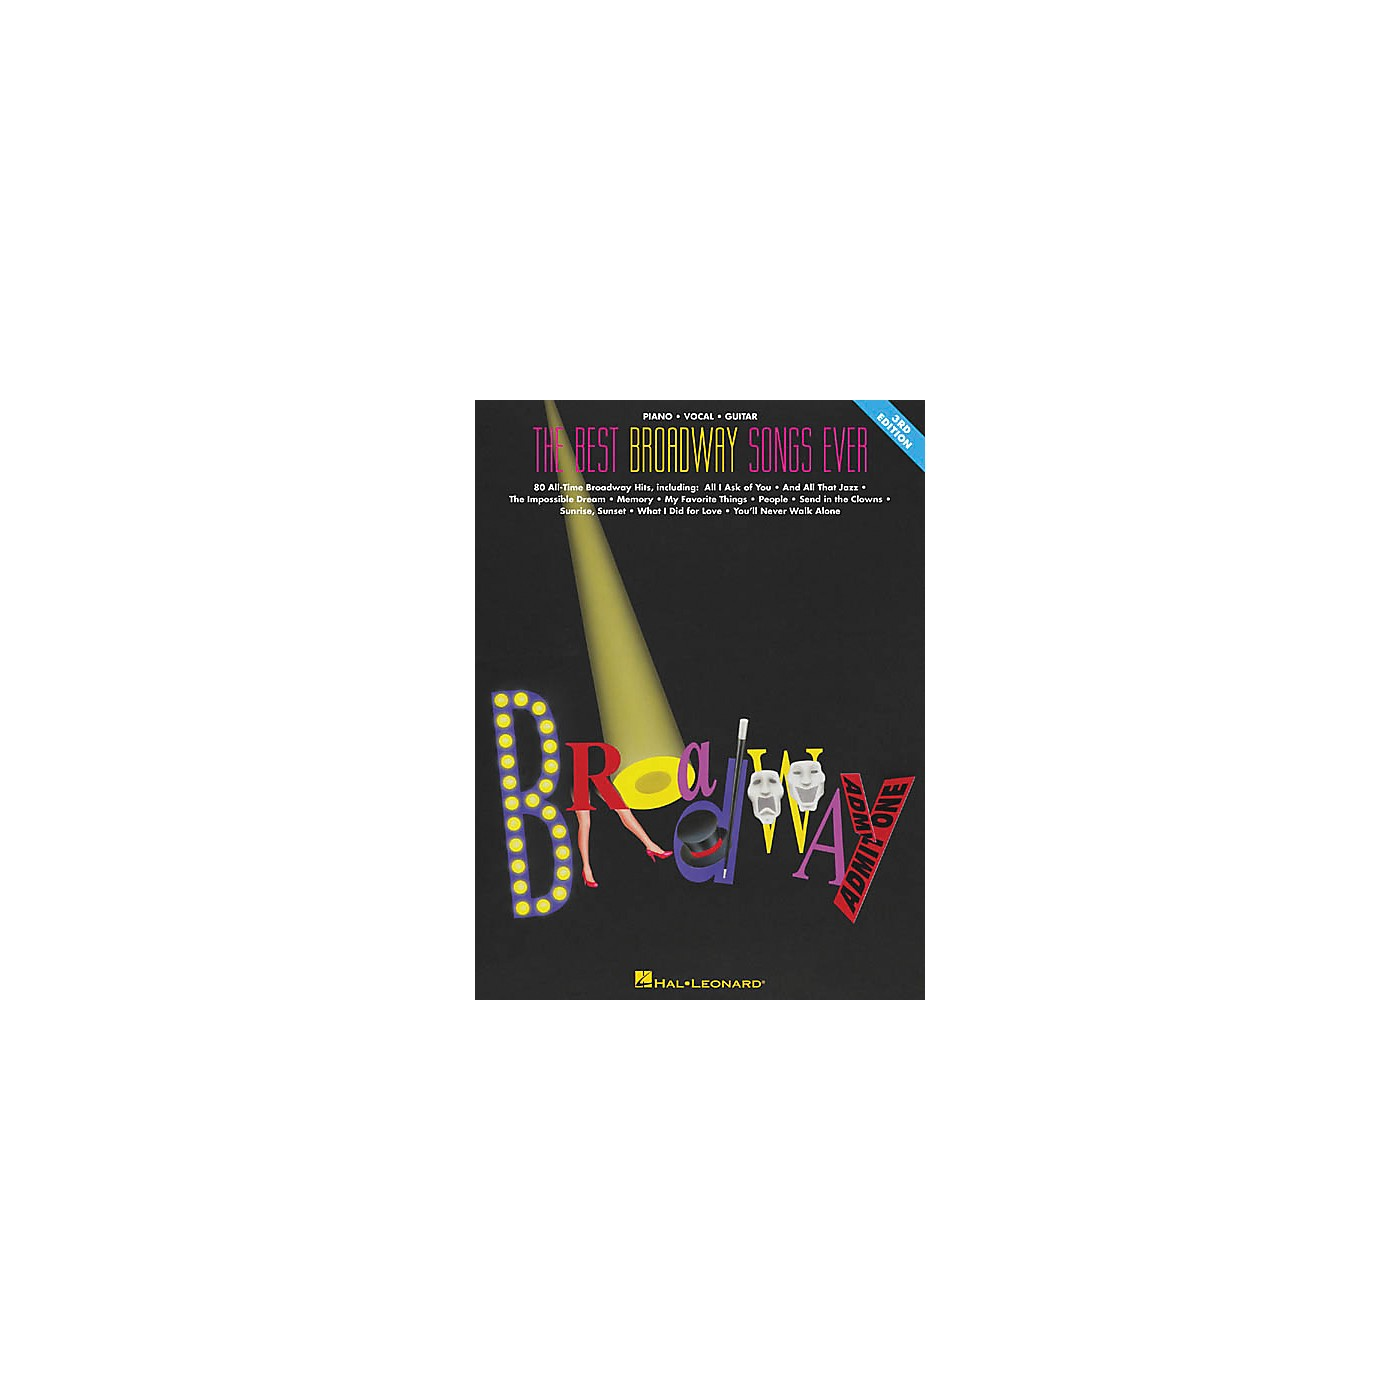 Hal Leonard The Best Broadway Songs Ever Updated Piano, Vocal, Guitar Songbook thumbnail